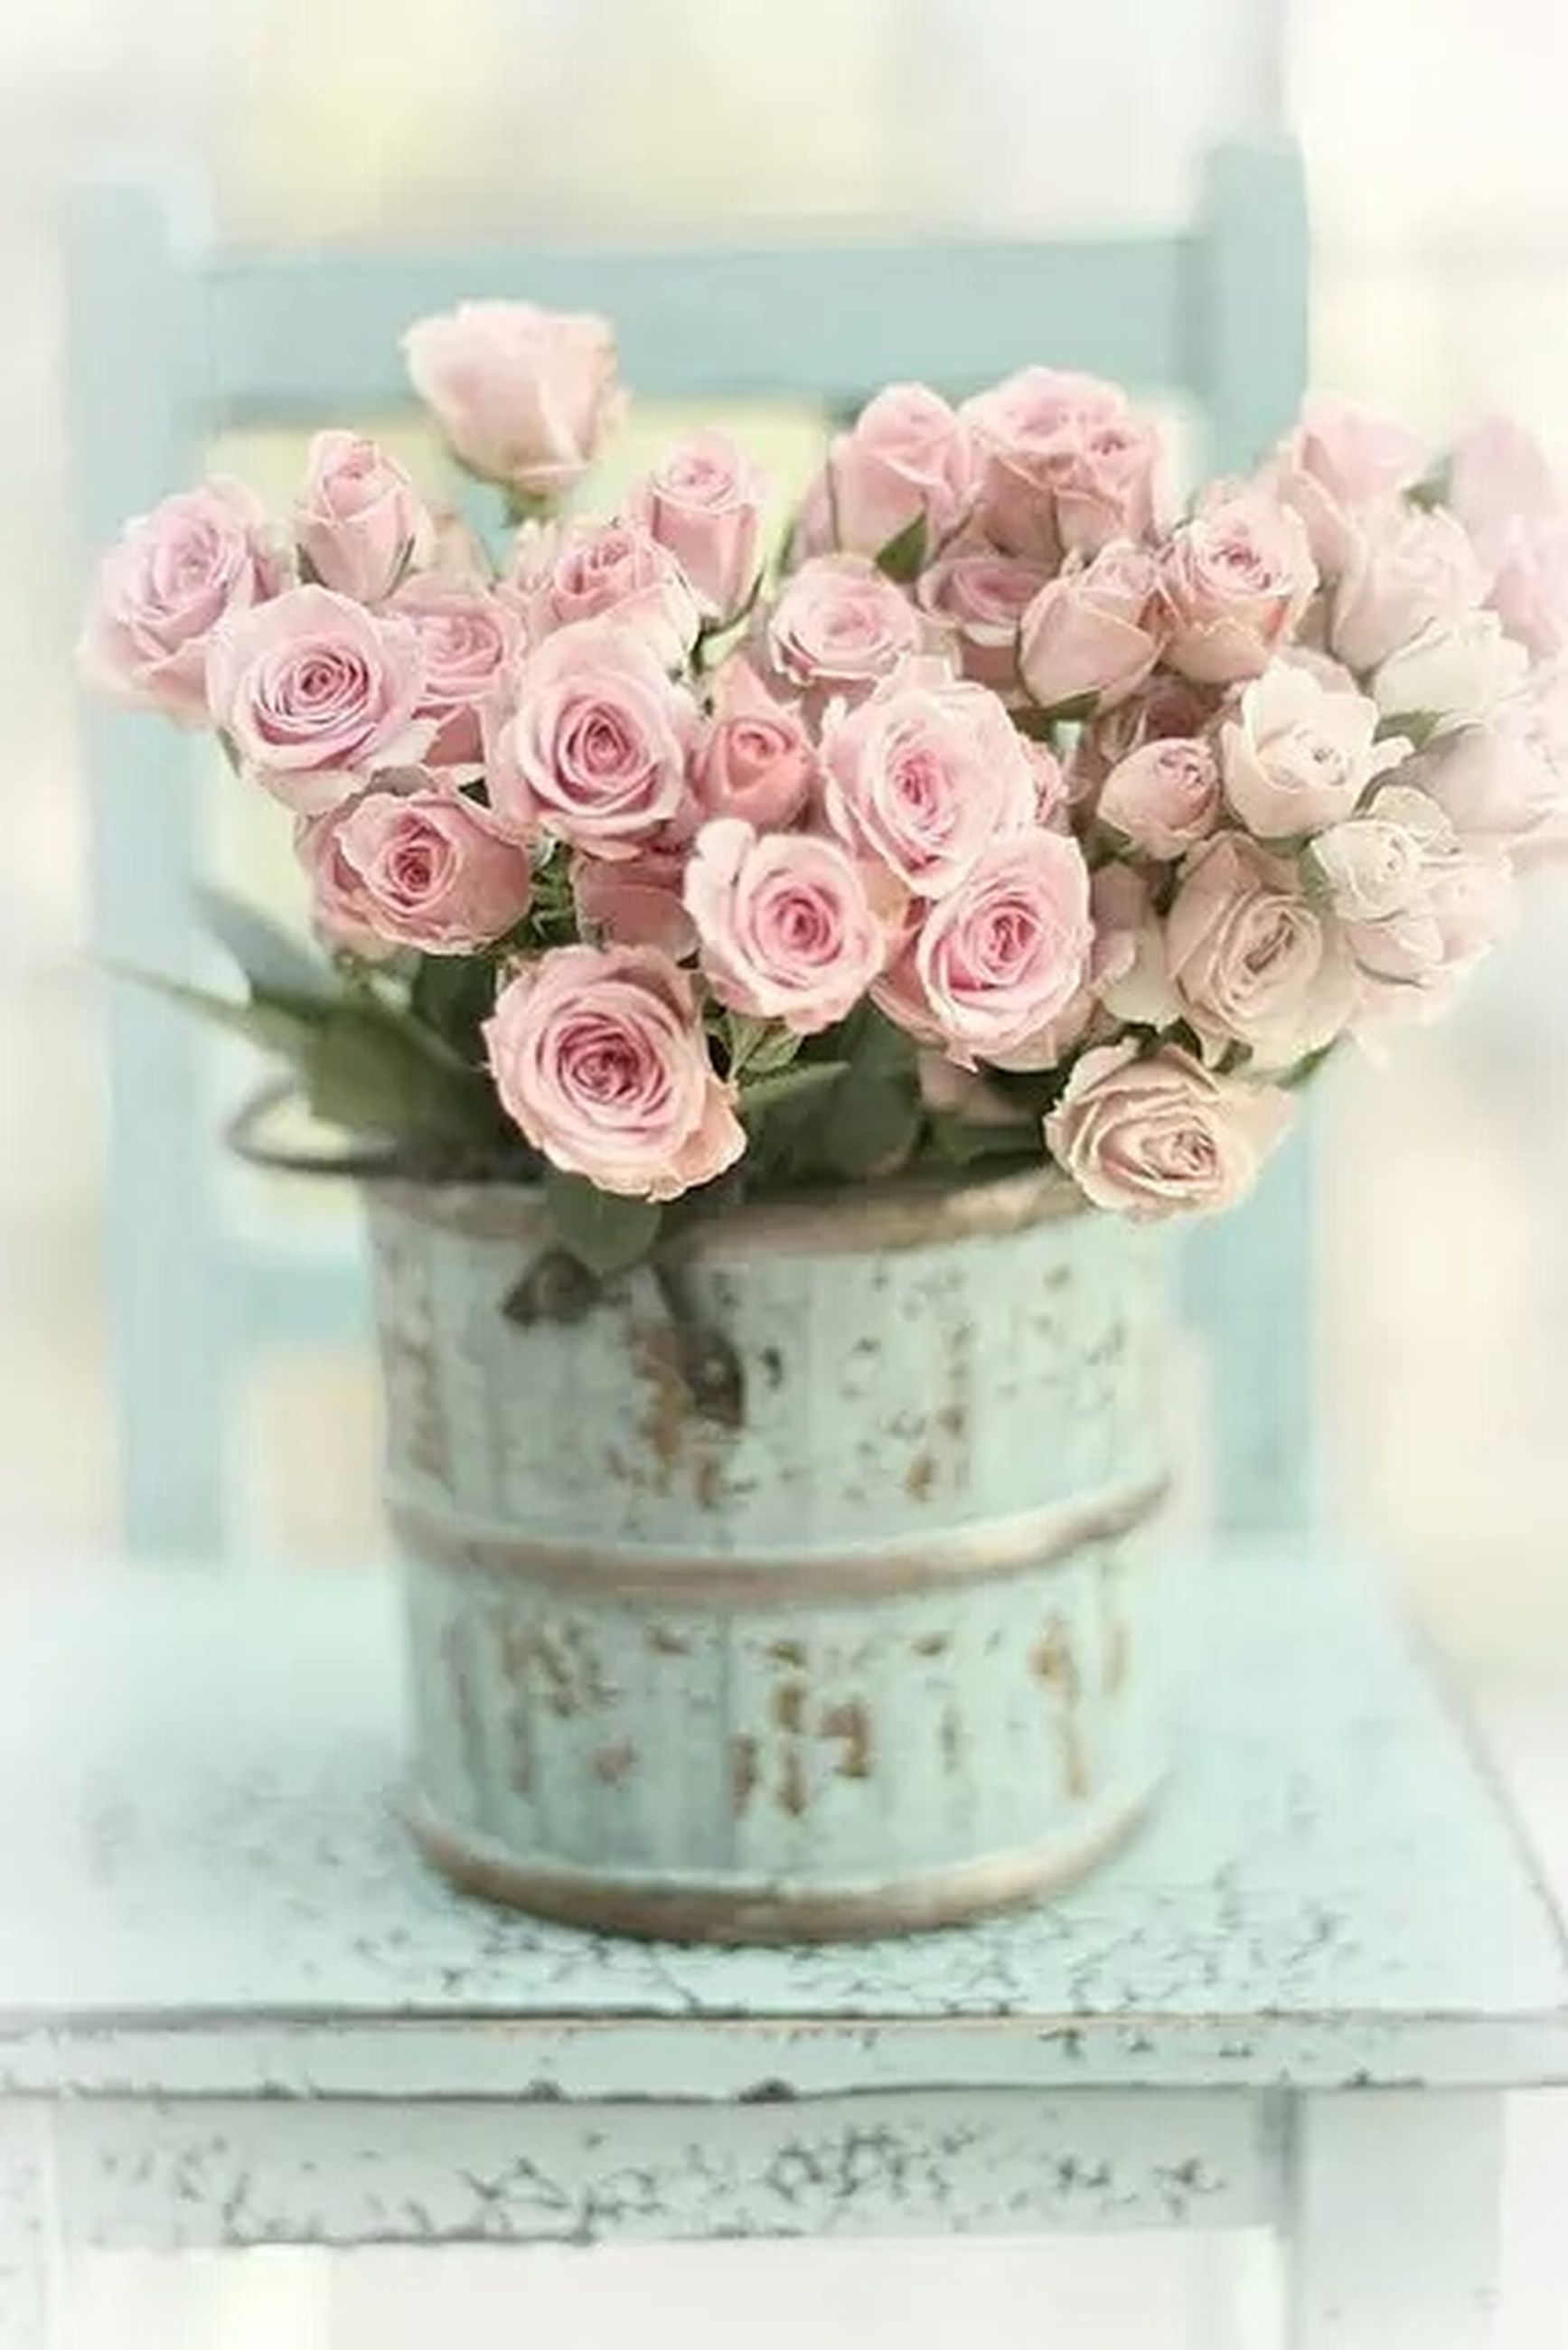 flower, freshness, fragility, petal, indoors, close-up, flower head, vase, rose - flower, focus on foreground, pink color, beauty in nature, decoration, bunch of flowers, nature, plant, flower arrangement, bouquet, selective focus, potted plant